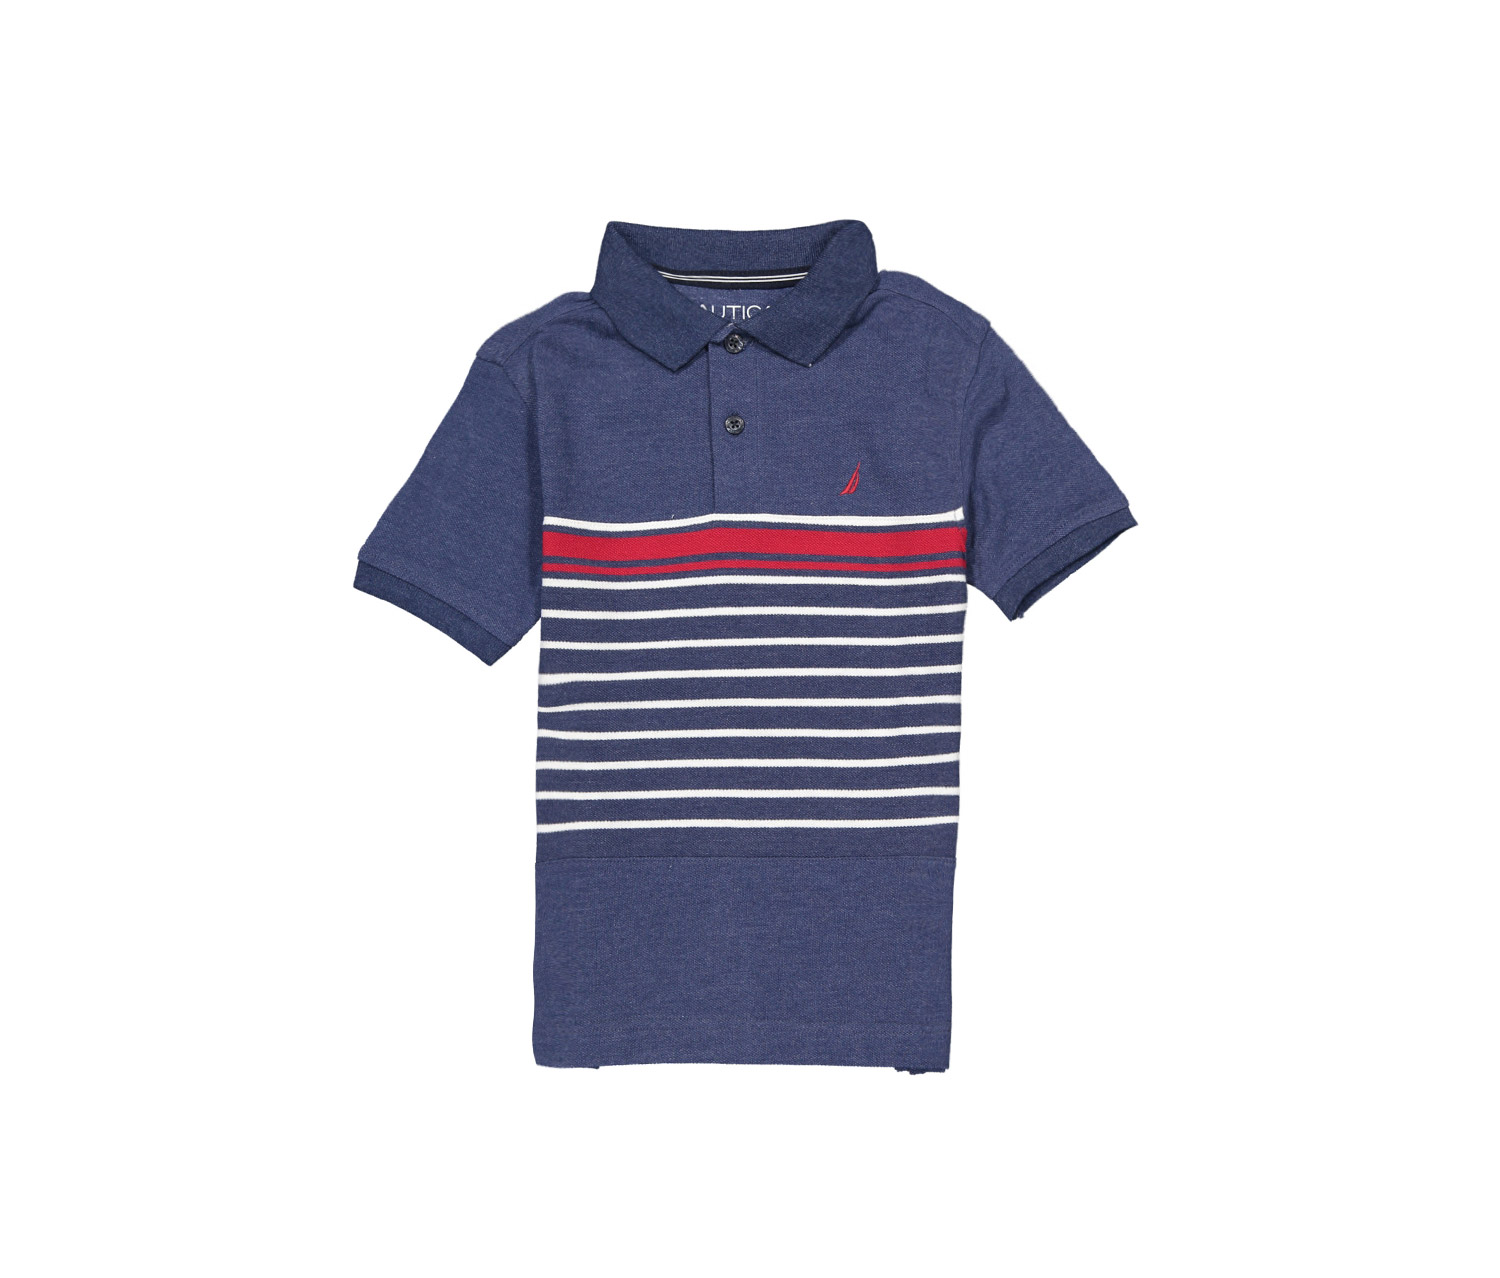 ece82f97da7412 Shop nautica Nautica Boys Short Sleeve Striped Deck Polo Shirt, Retro Blue  for Kids - Boys in Lebanon - Brands For Less